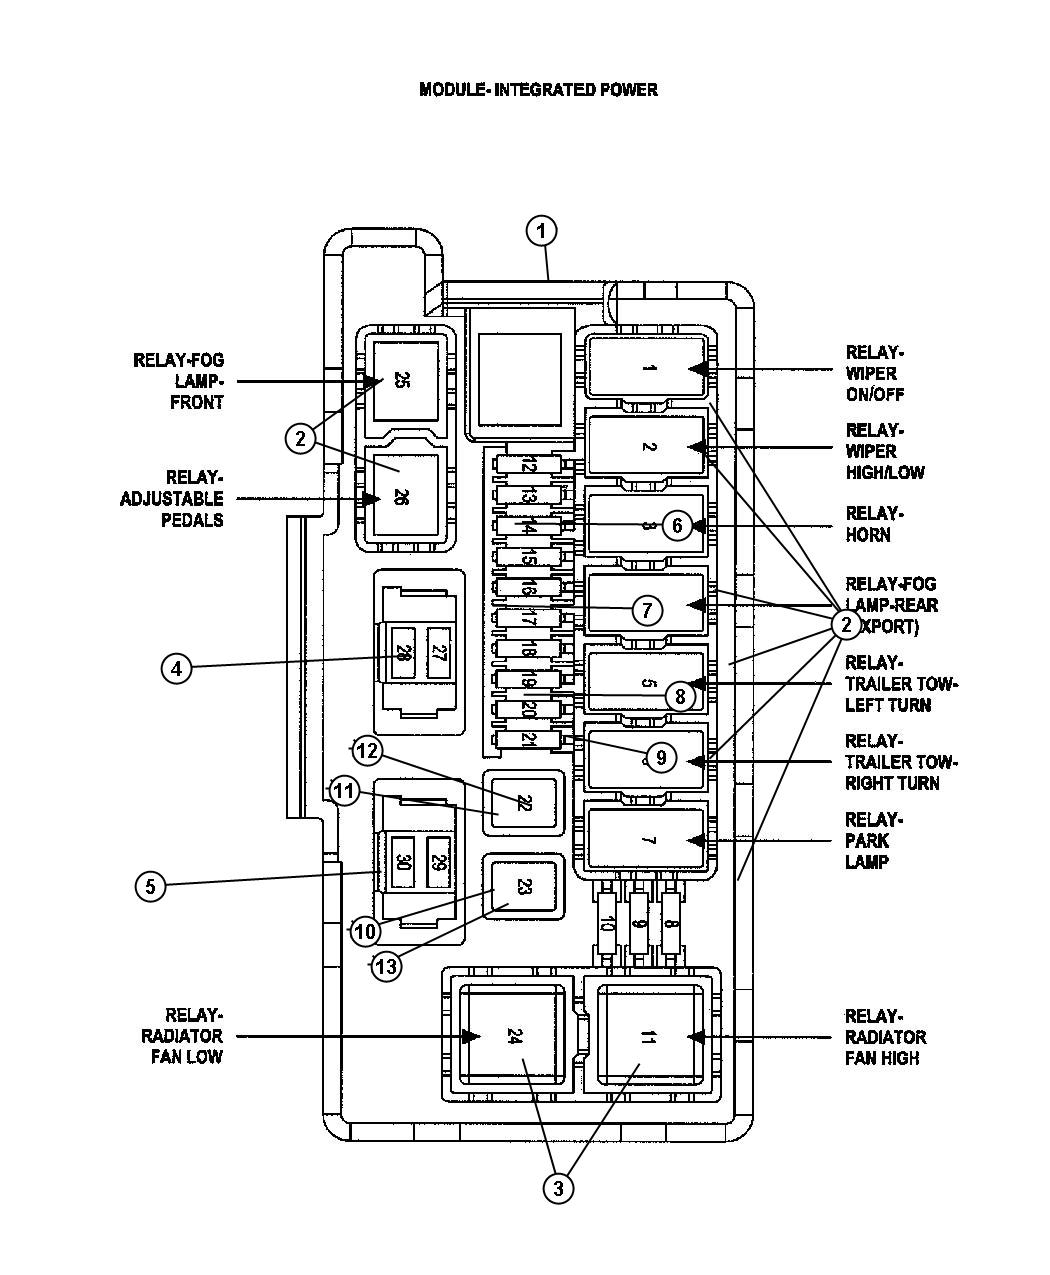 i2163577 jeep stereo wiring diagram jeep free wiring diagrams 2008 jeep wrangler horn wiring diagram at soozxer.org